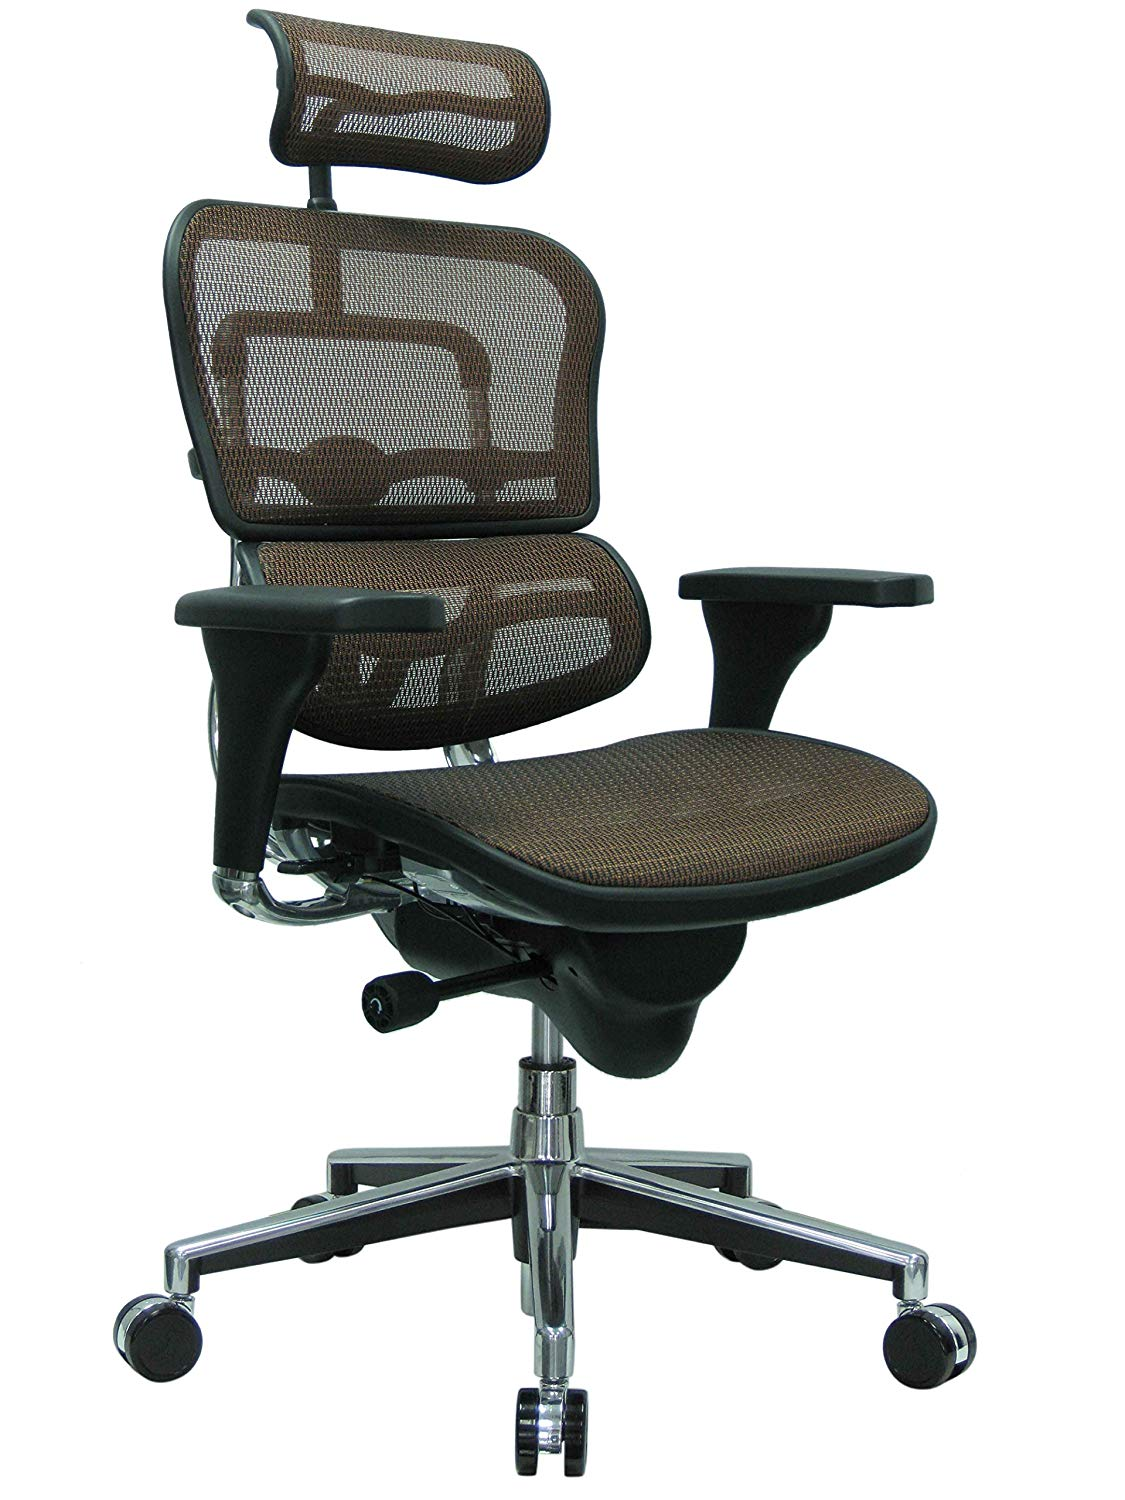 <font color=#c58b4a>ERGOHUMAN HIGH-BACK MESH CHAIR EH-ME7ERG ORANGE</font>